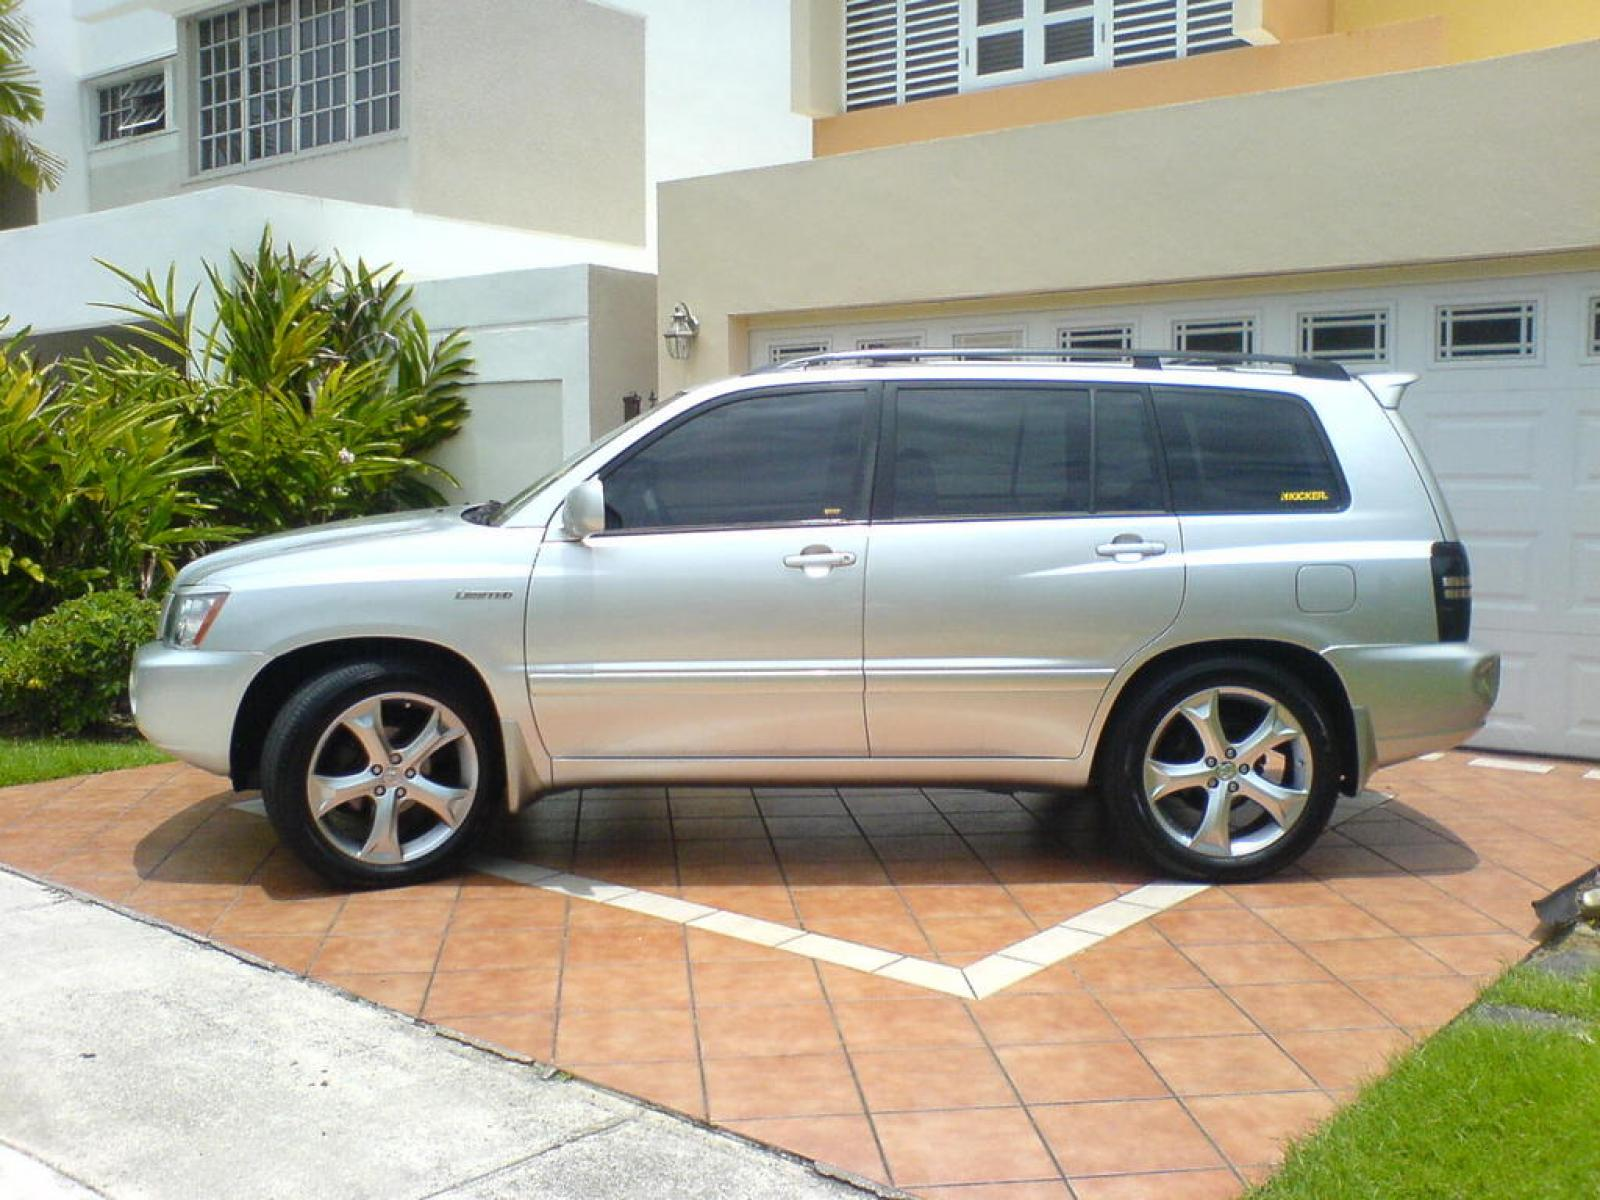 2002 toyota highlander information and photos zombiedrive